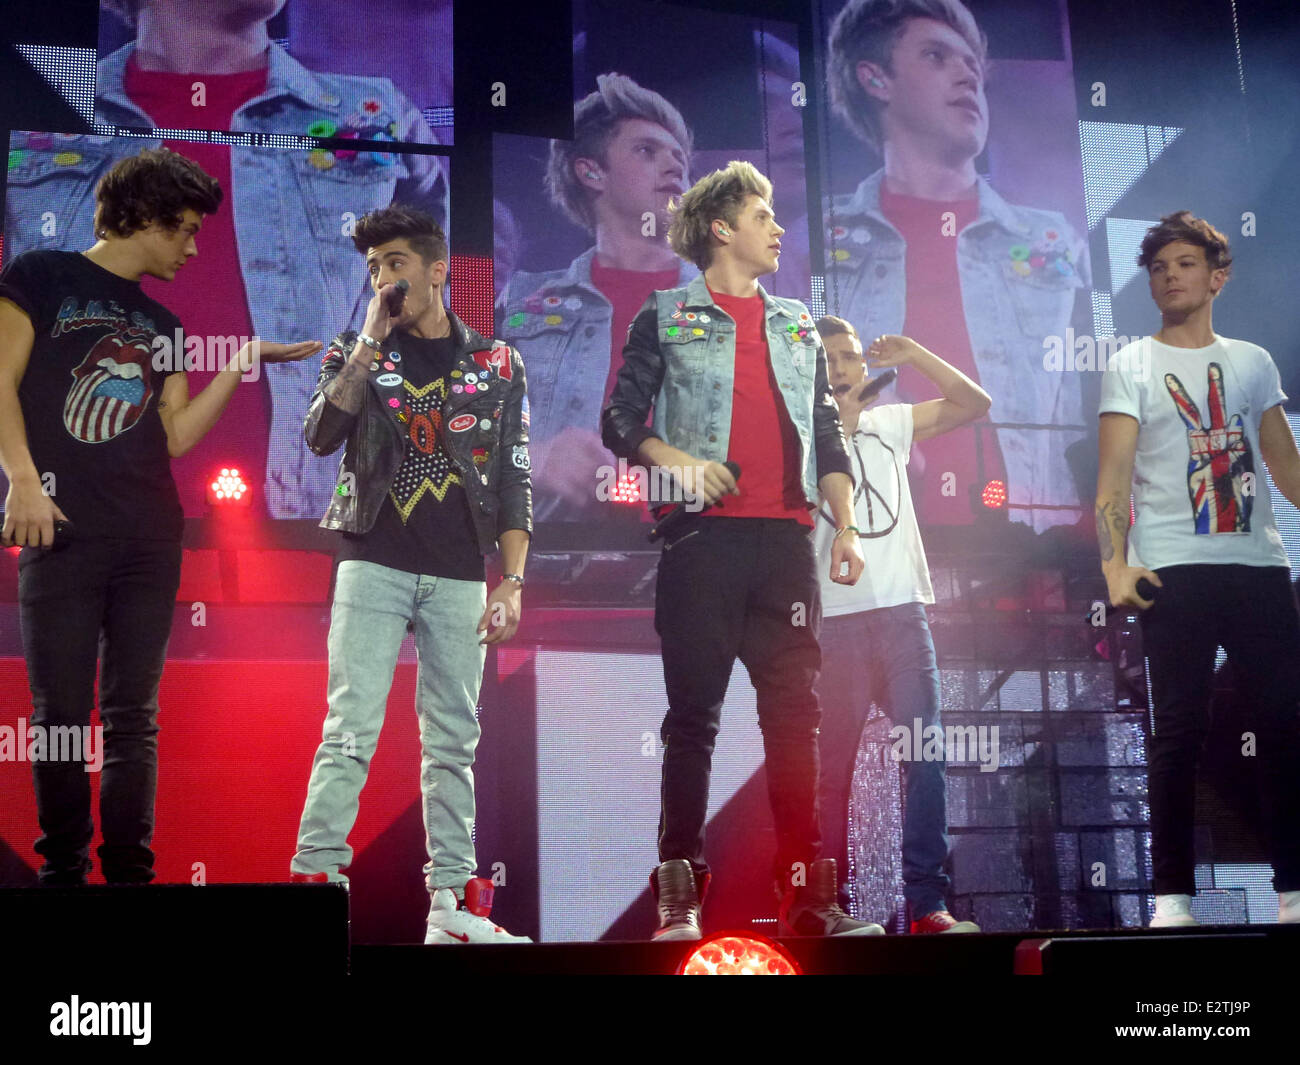 One Direction perform during the second night of their Take